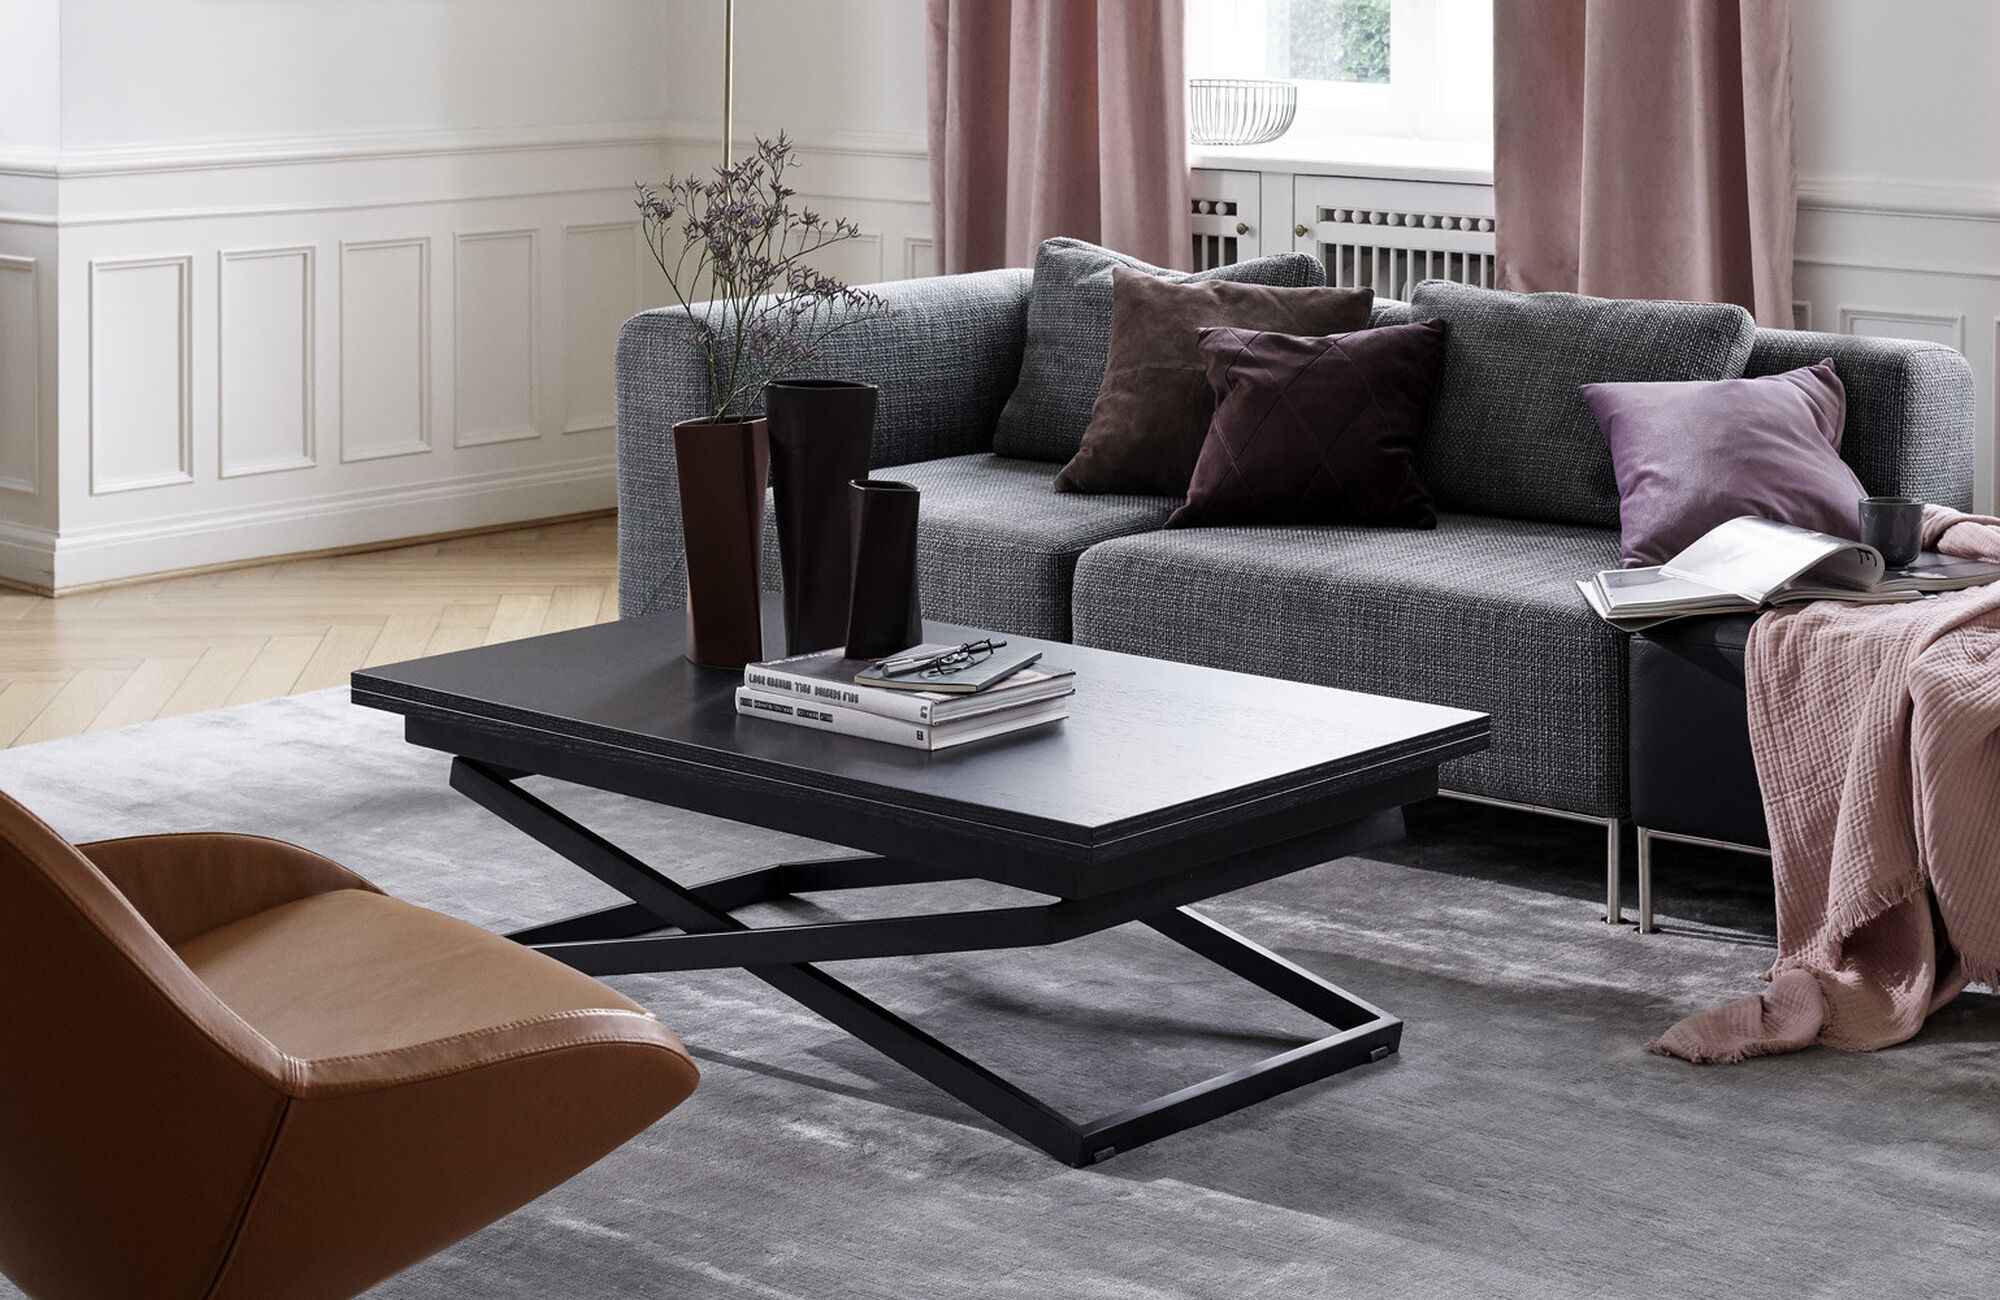 Coffee tables - Rubi adjustable table (height and size can be adjusted)